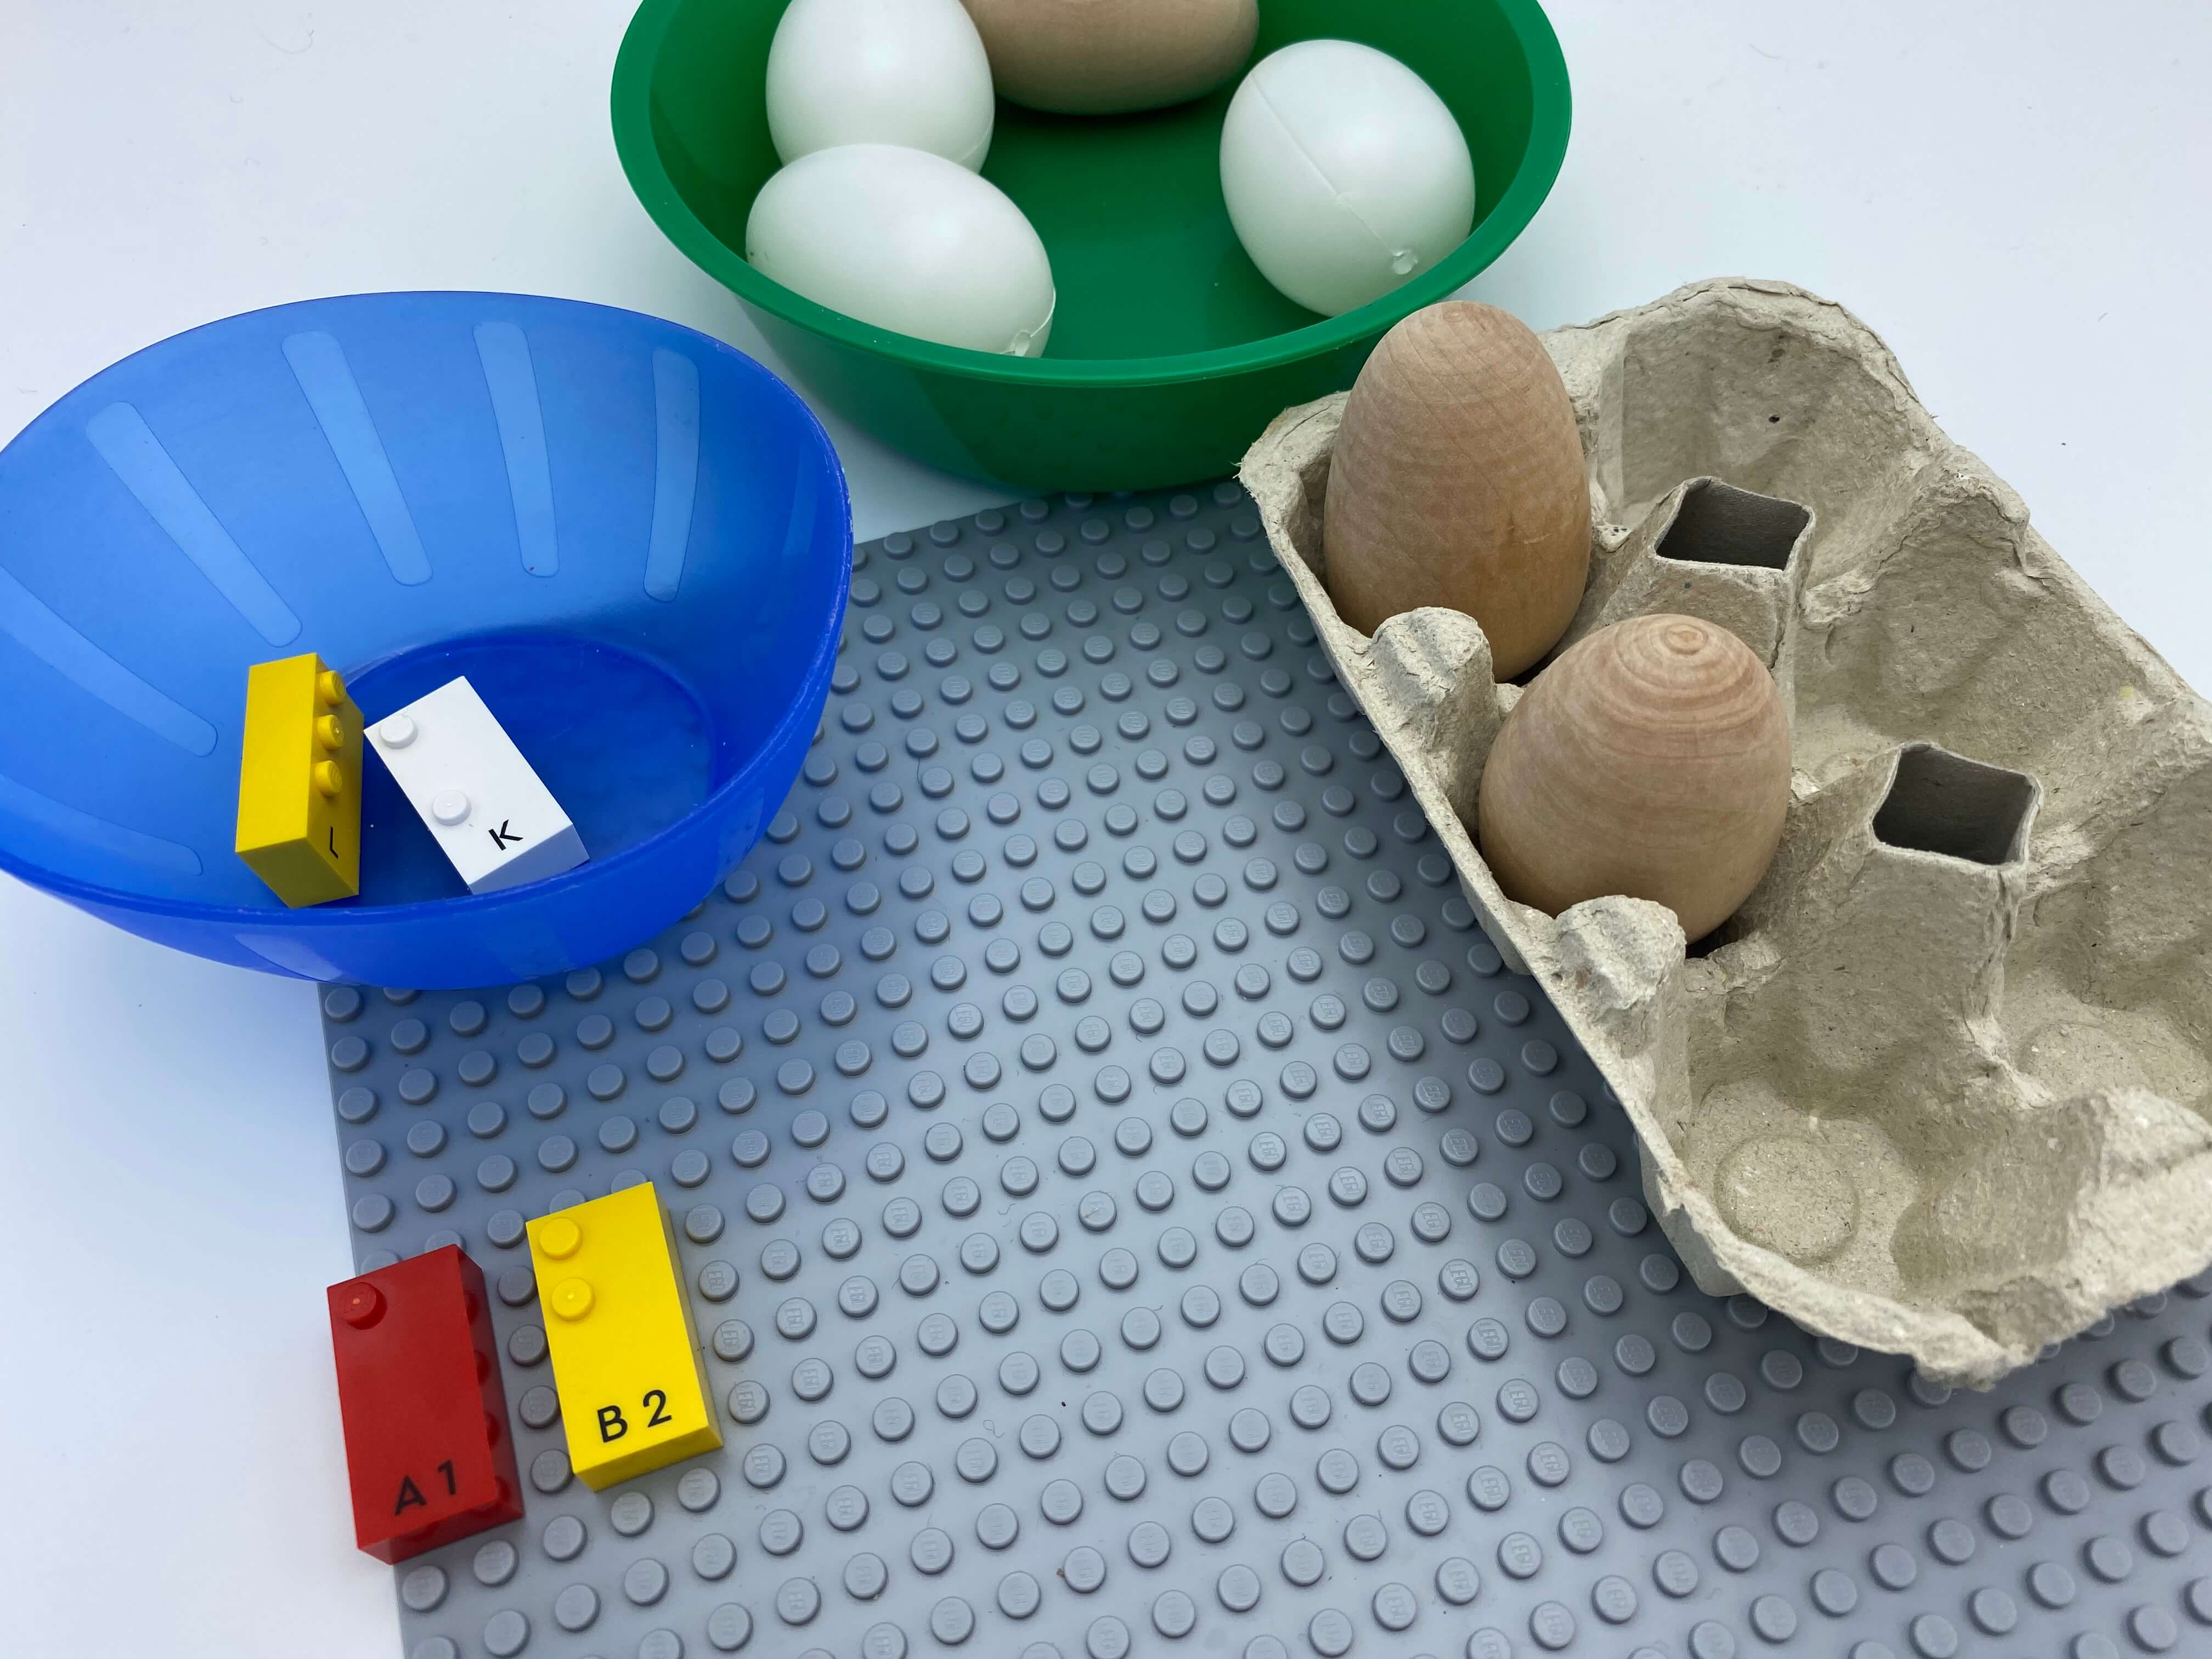 Letter brick b on the base plate, egg carton with 1 egg in dot 1 and in dot 2.